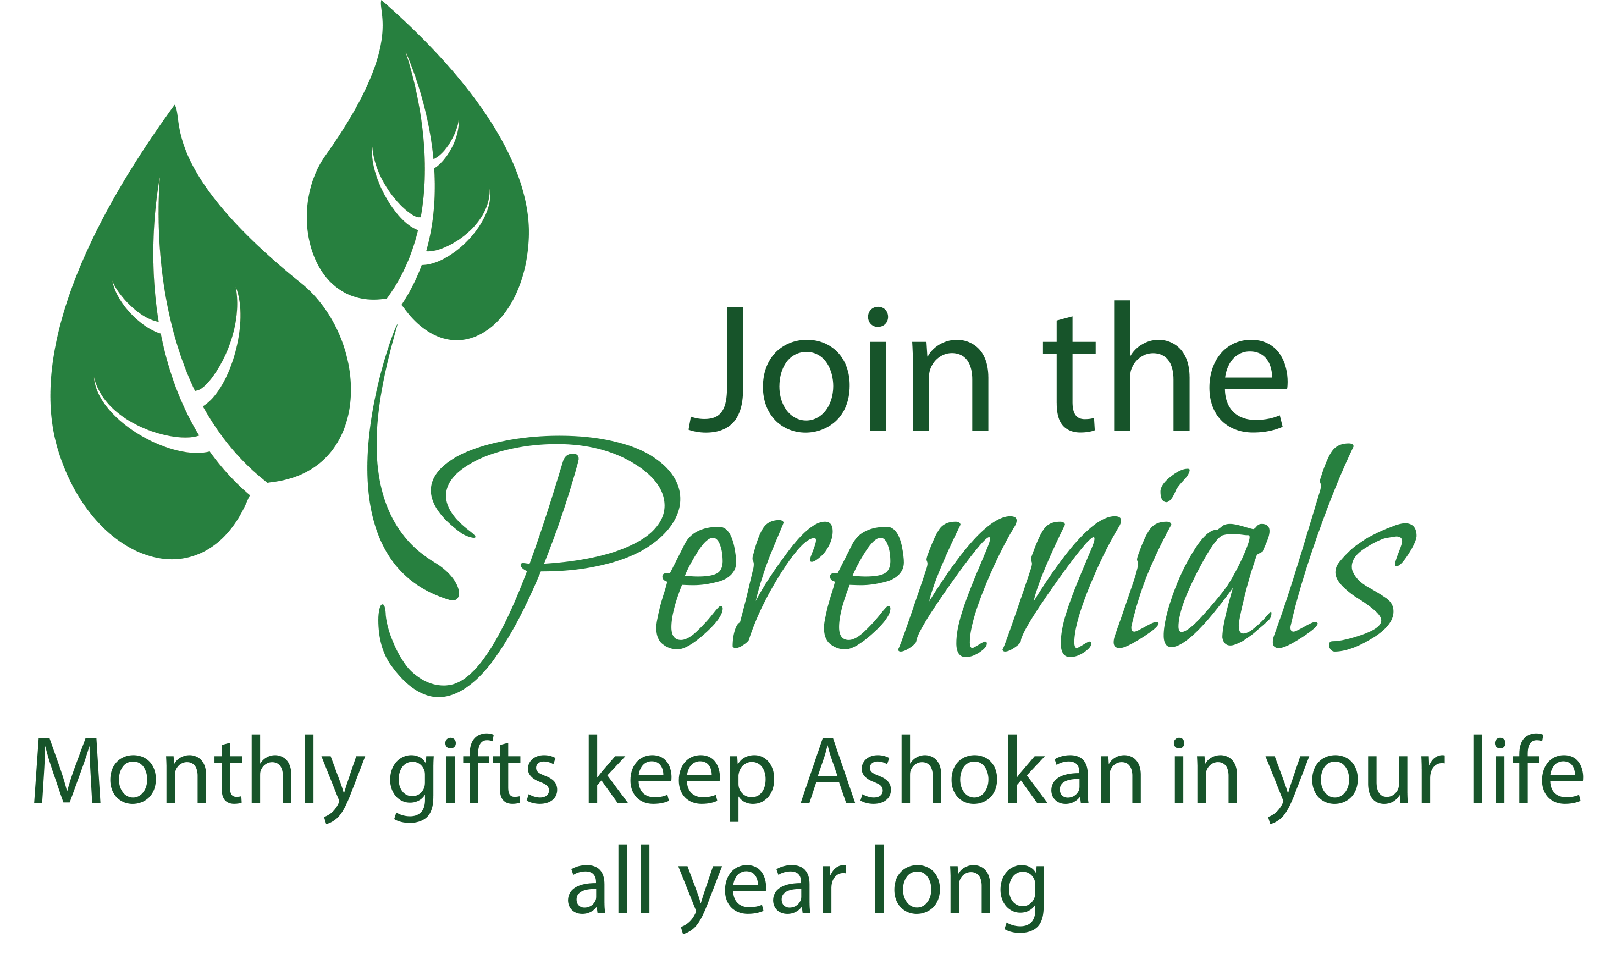 JOIN THE PERENNIALS